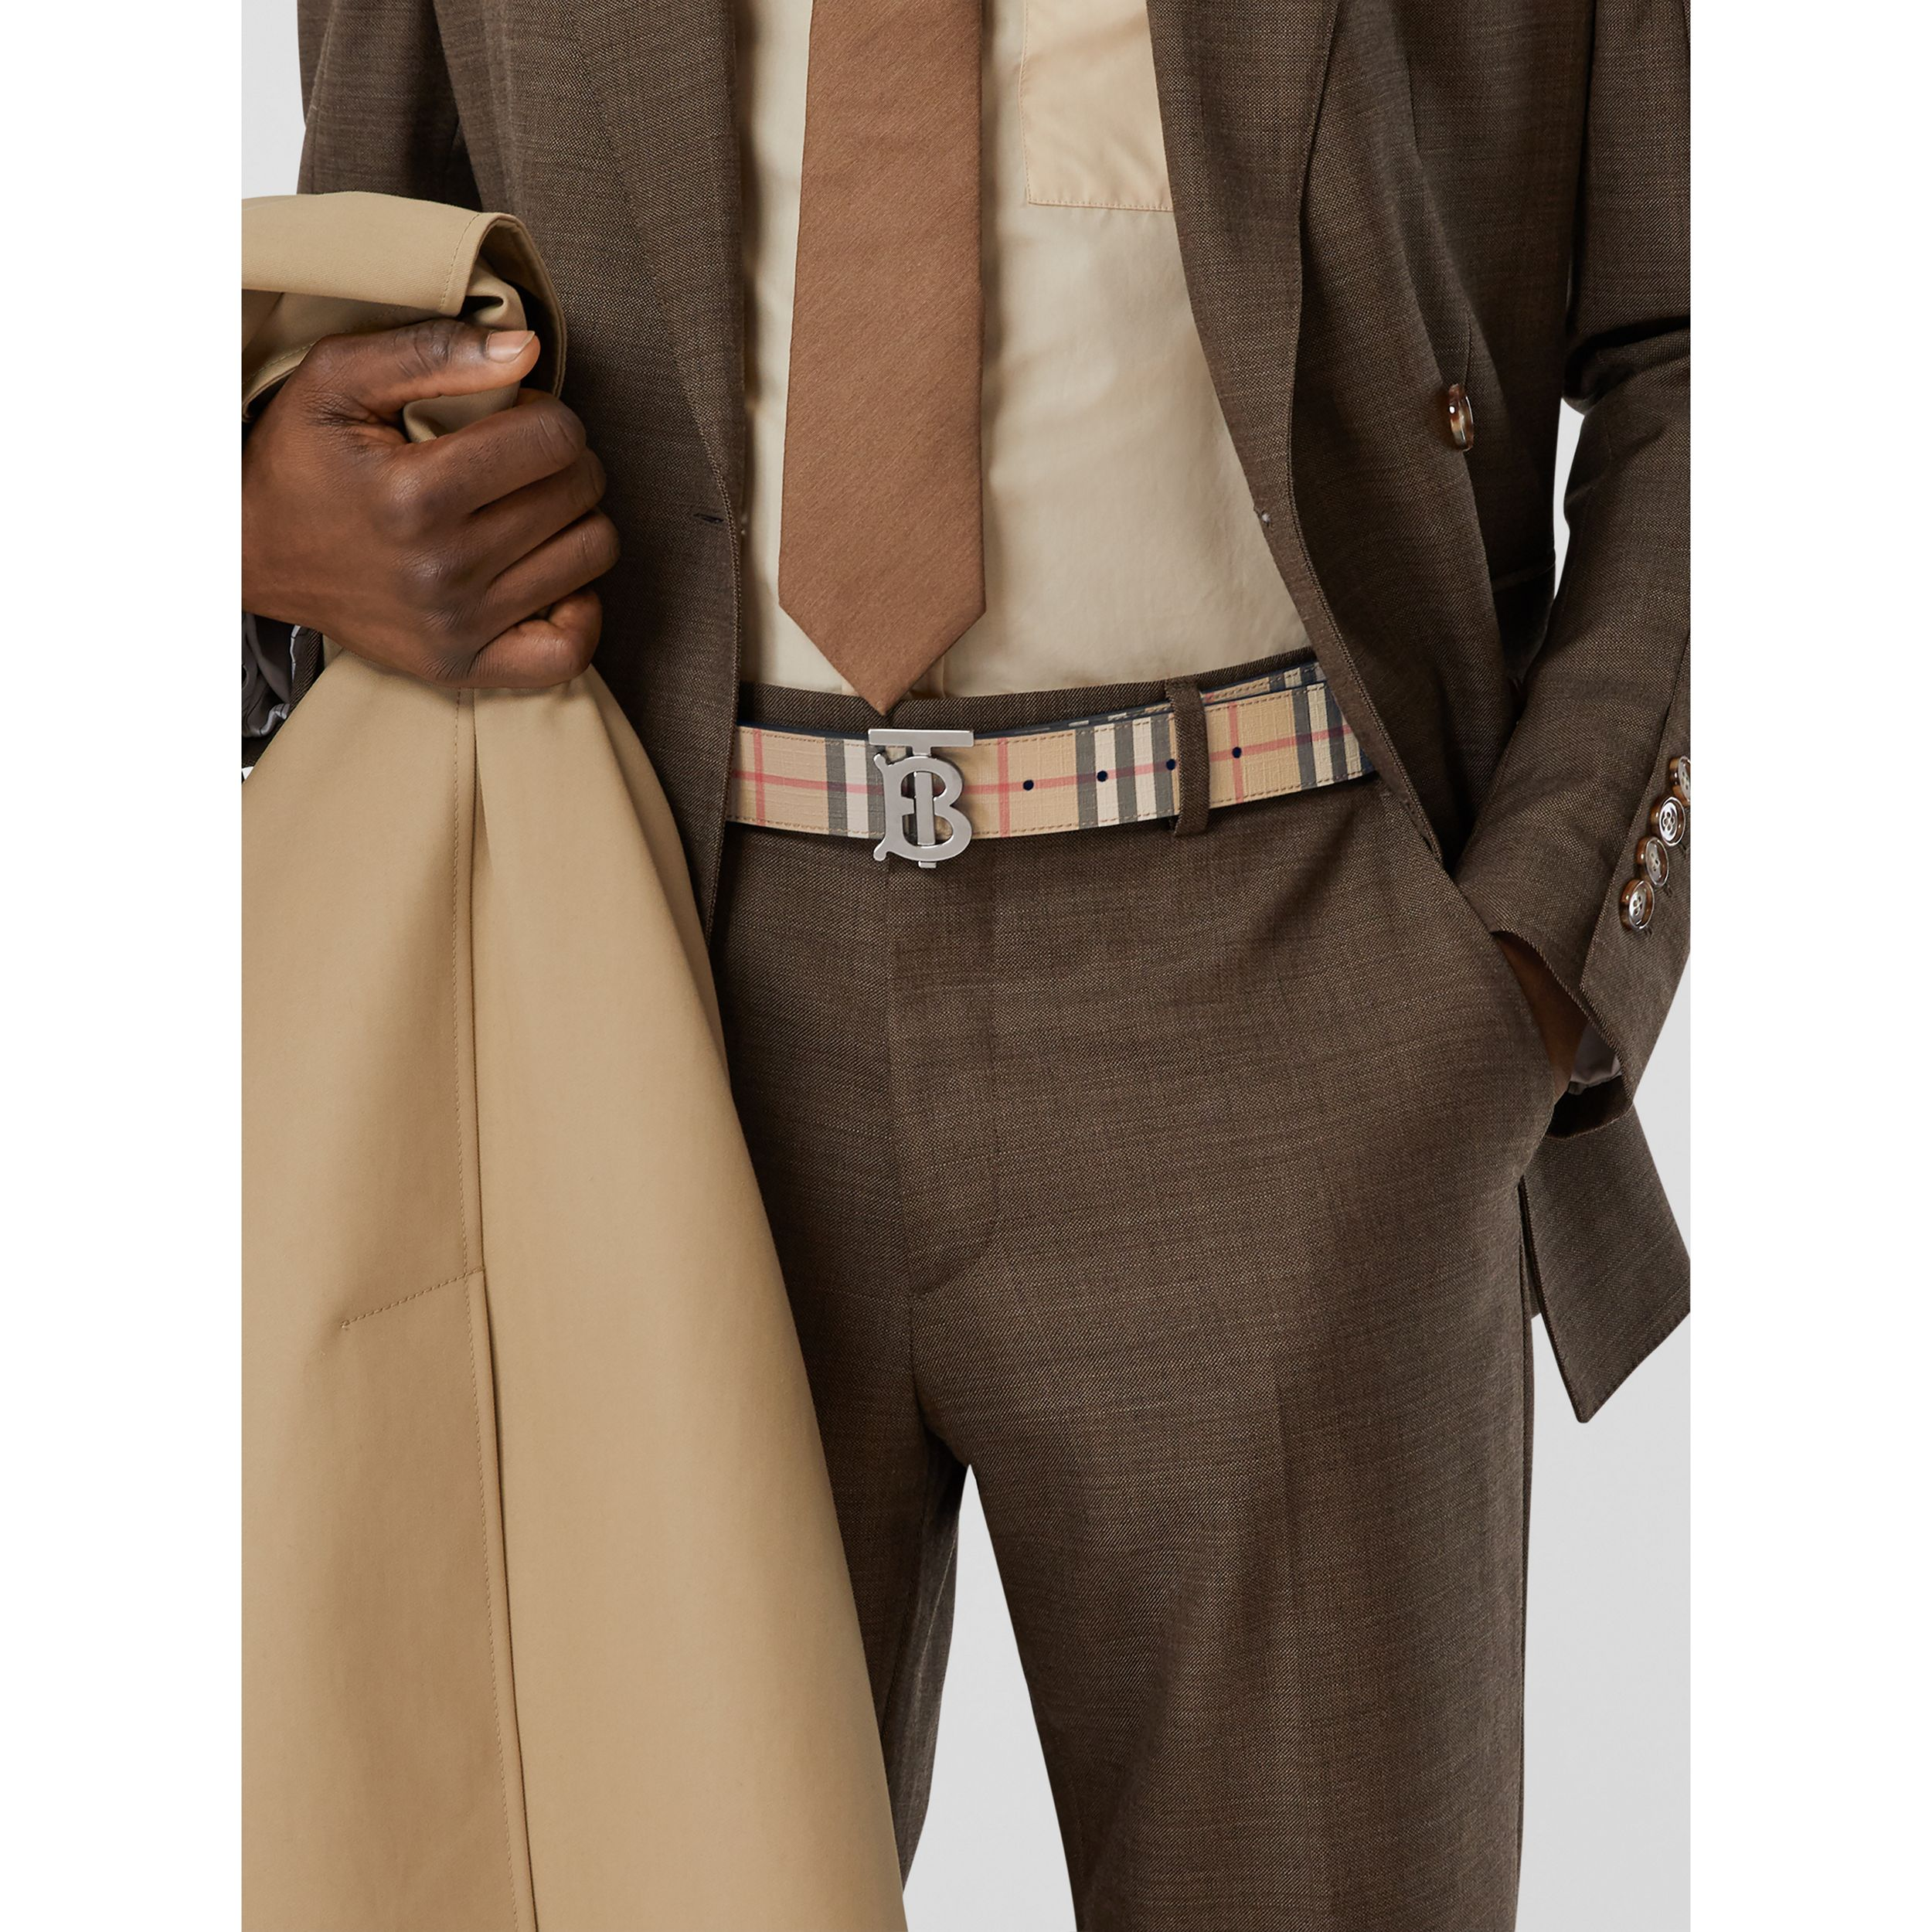 Reversible Monogram Motif Vintage Check Belt in Archive Beige - Men | Burberry - 3